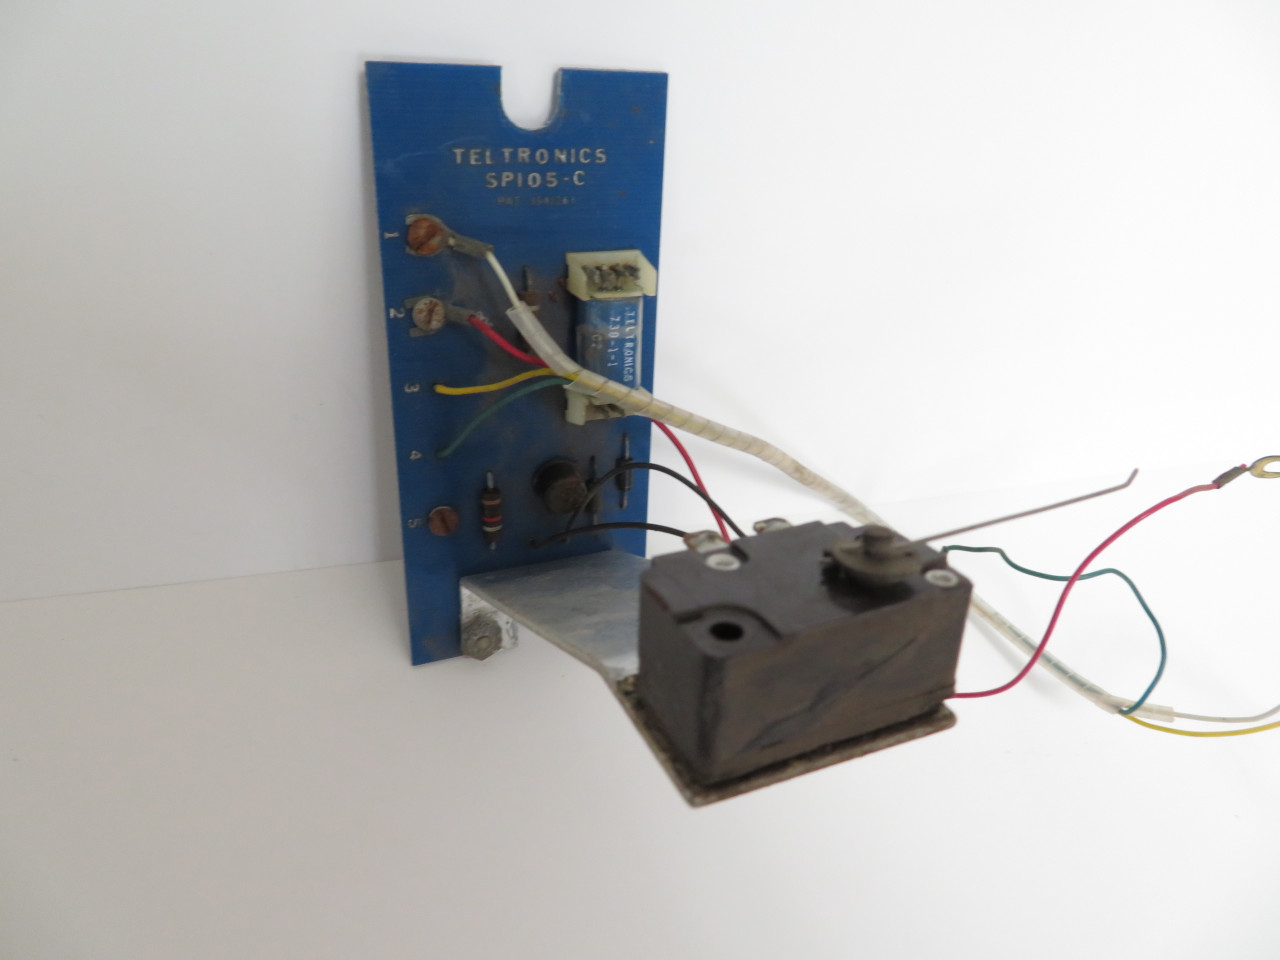 teltronics sp 105 coin relay 3 slot payphone3 slot payphone image 1 loading zoom [ 1280 x 960 Pixel ]